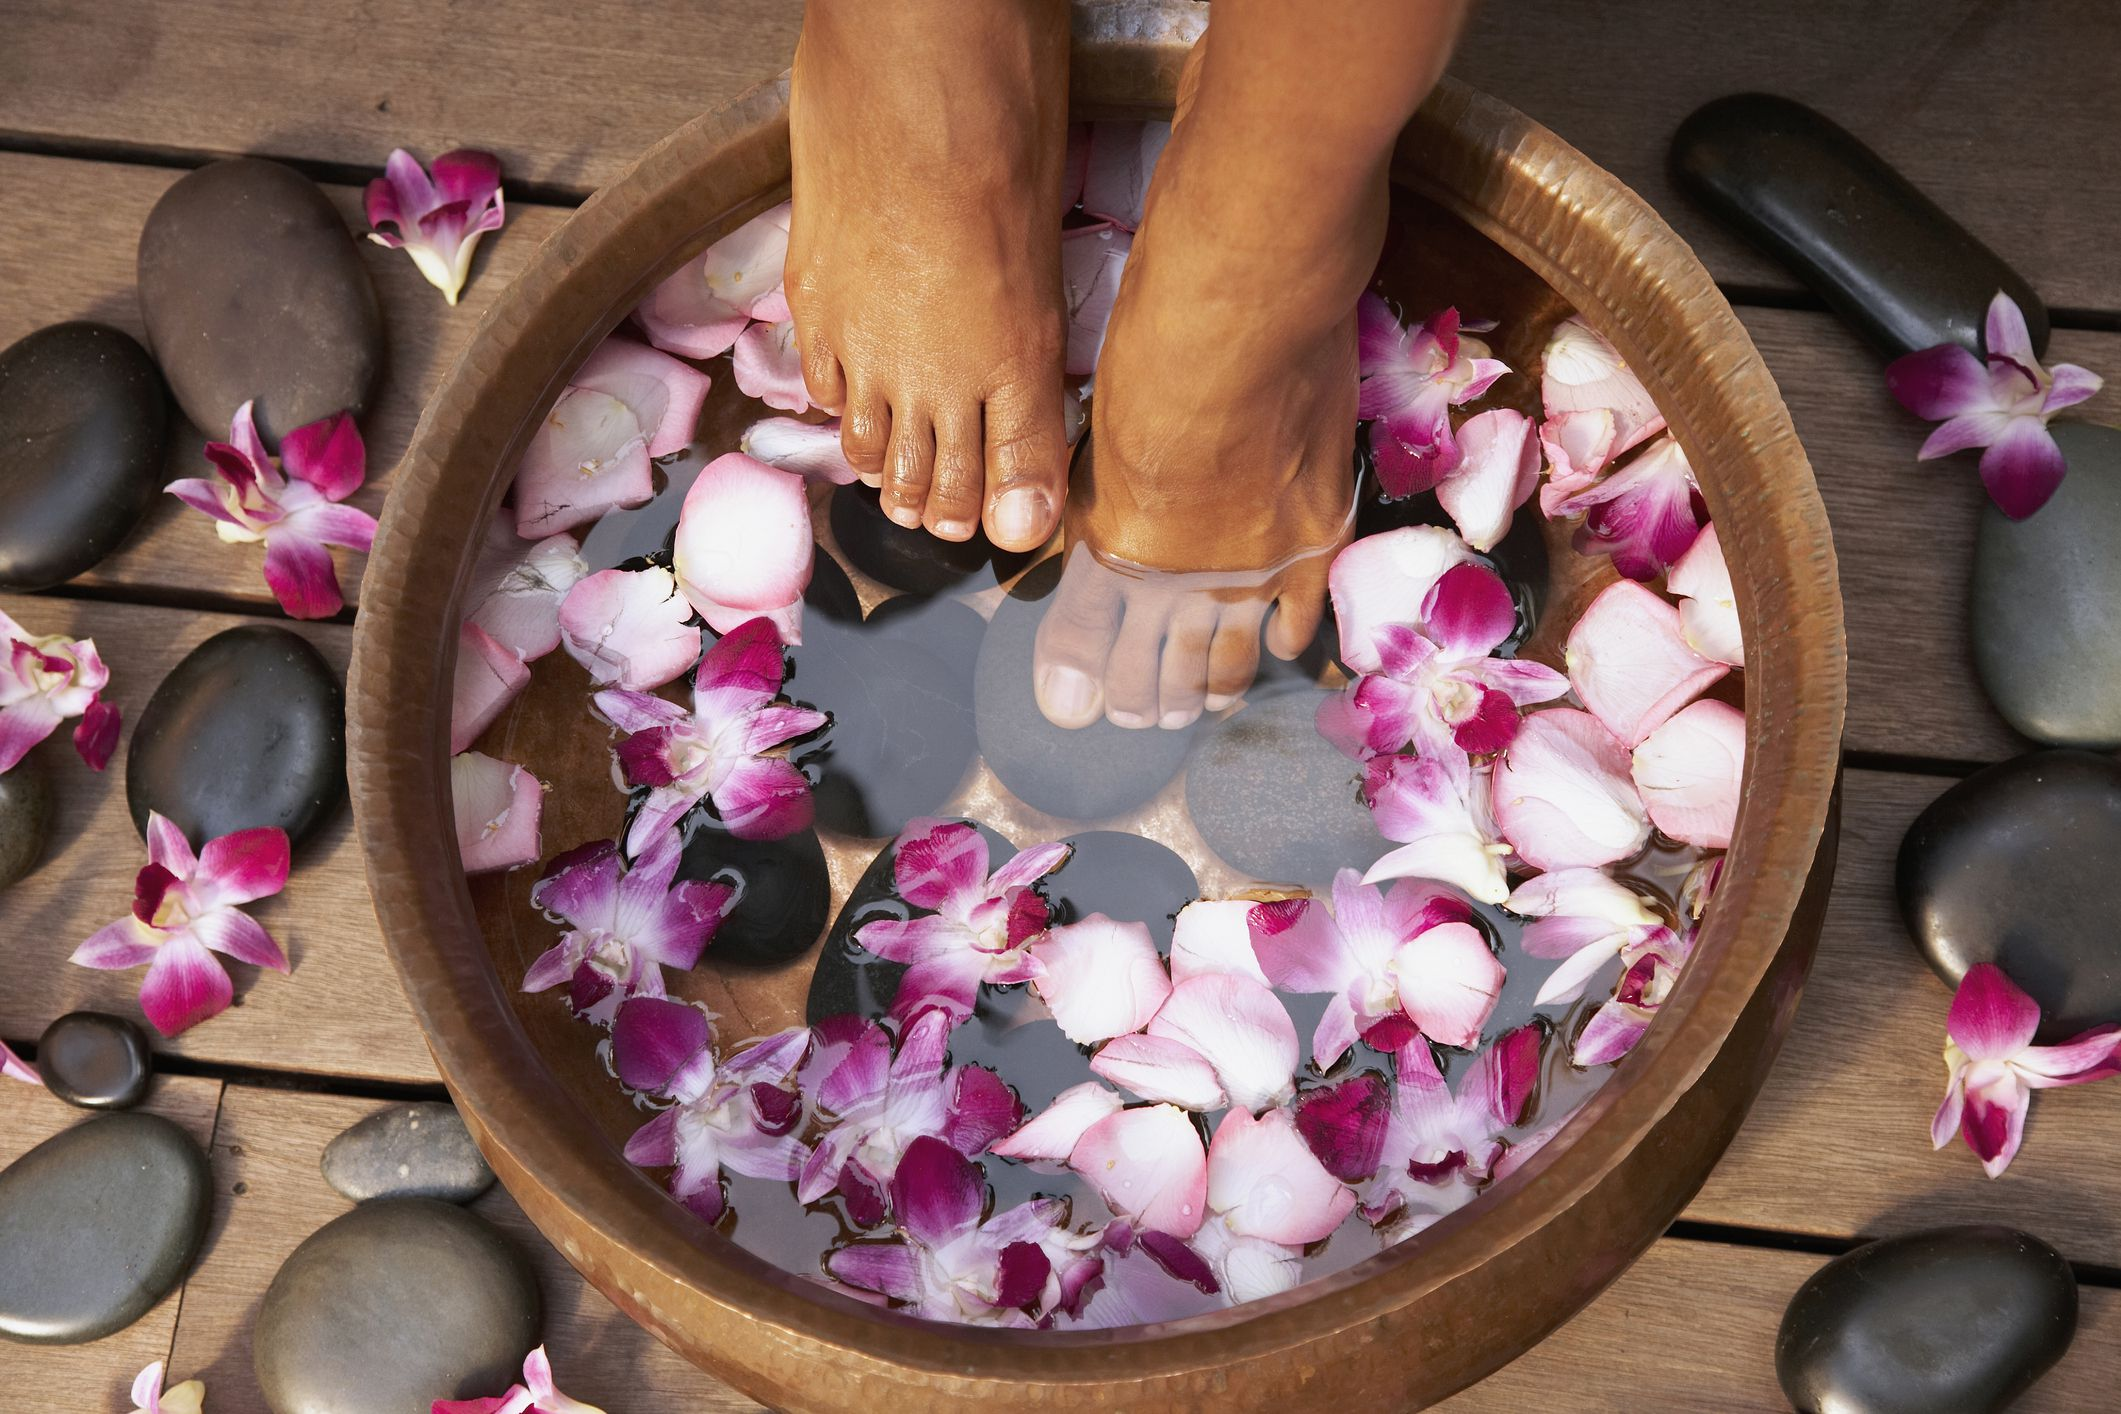 Top 4 Places to Get a Pedicure in Oahu